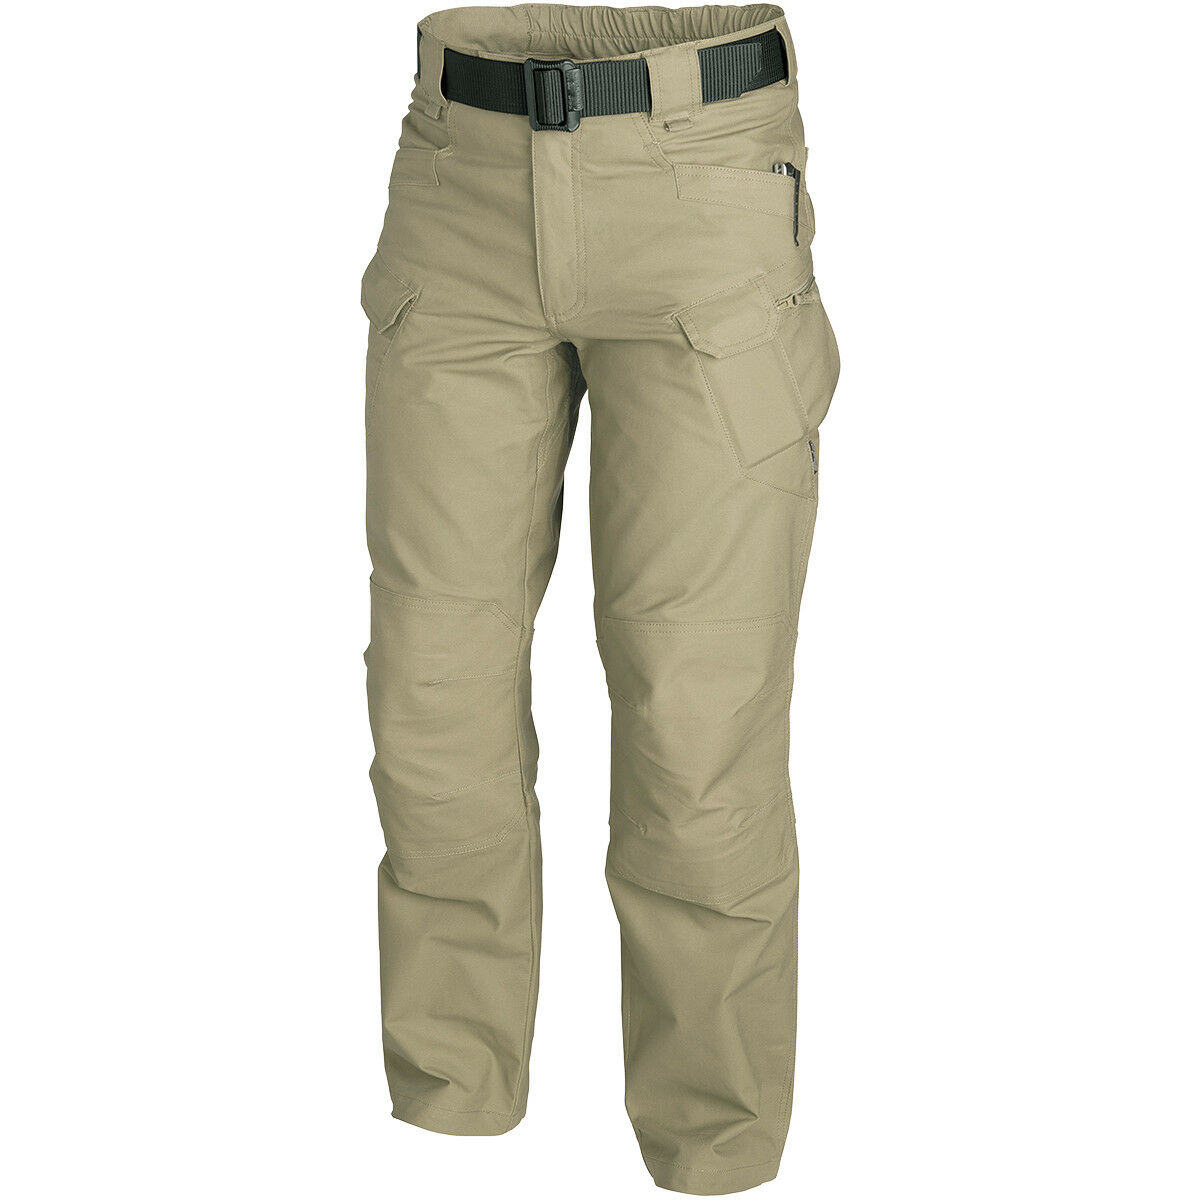 HELIKON UTP ARMY TACTICAL CARGO TROUSERS MENS COMBAT PANTS POLICE SECURITY KHAKI